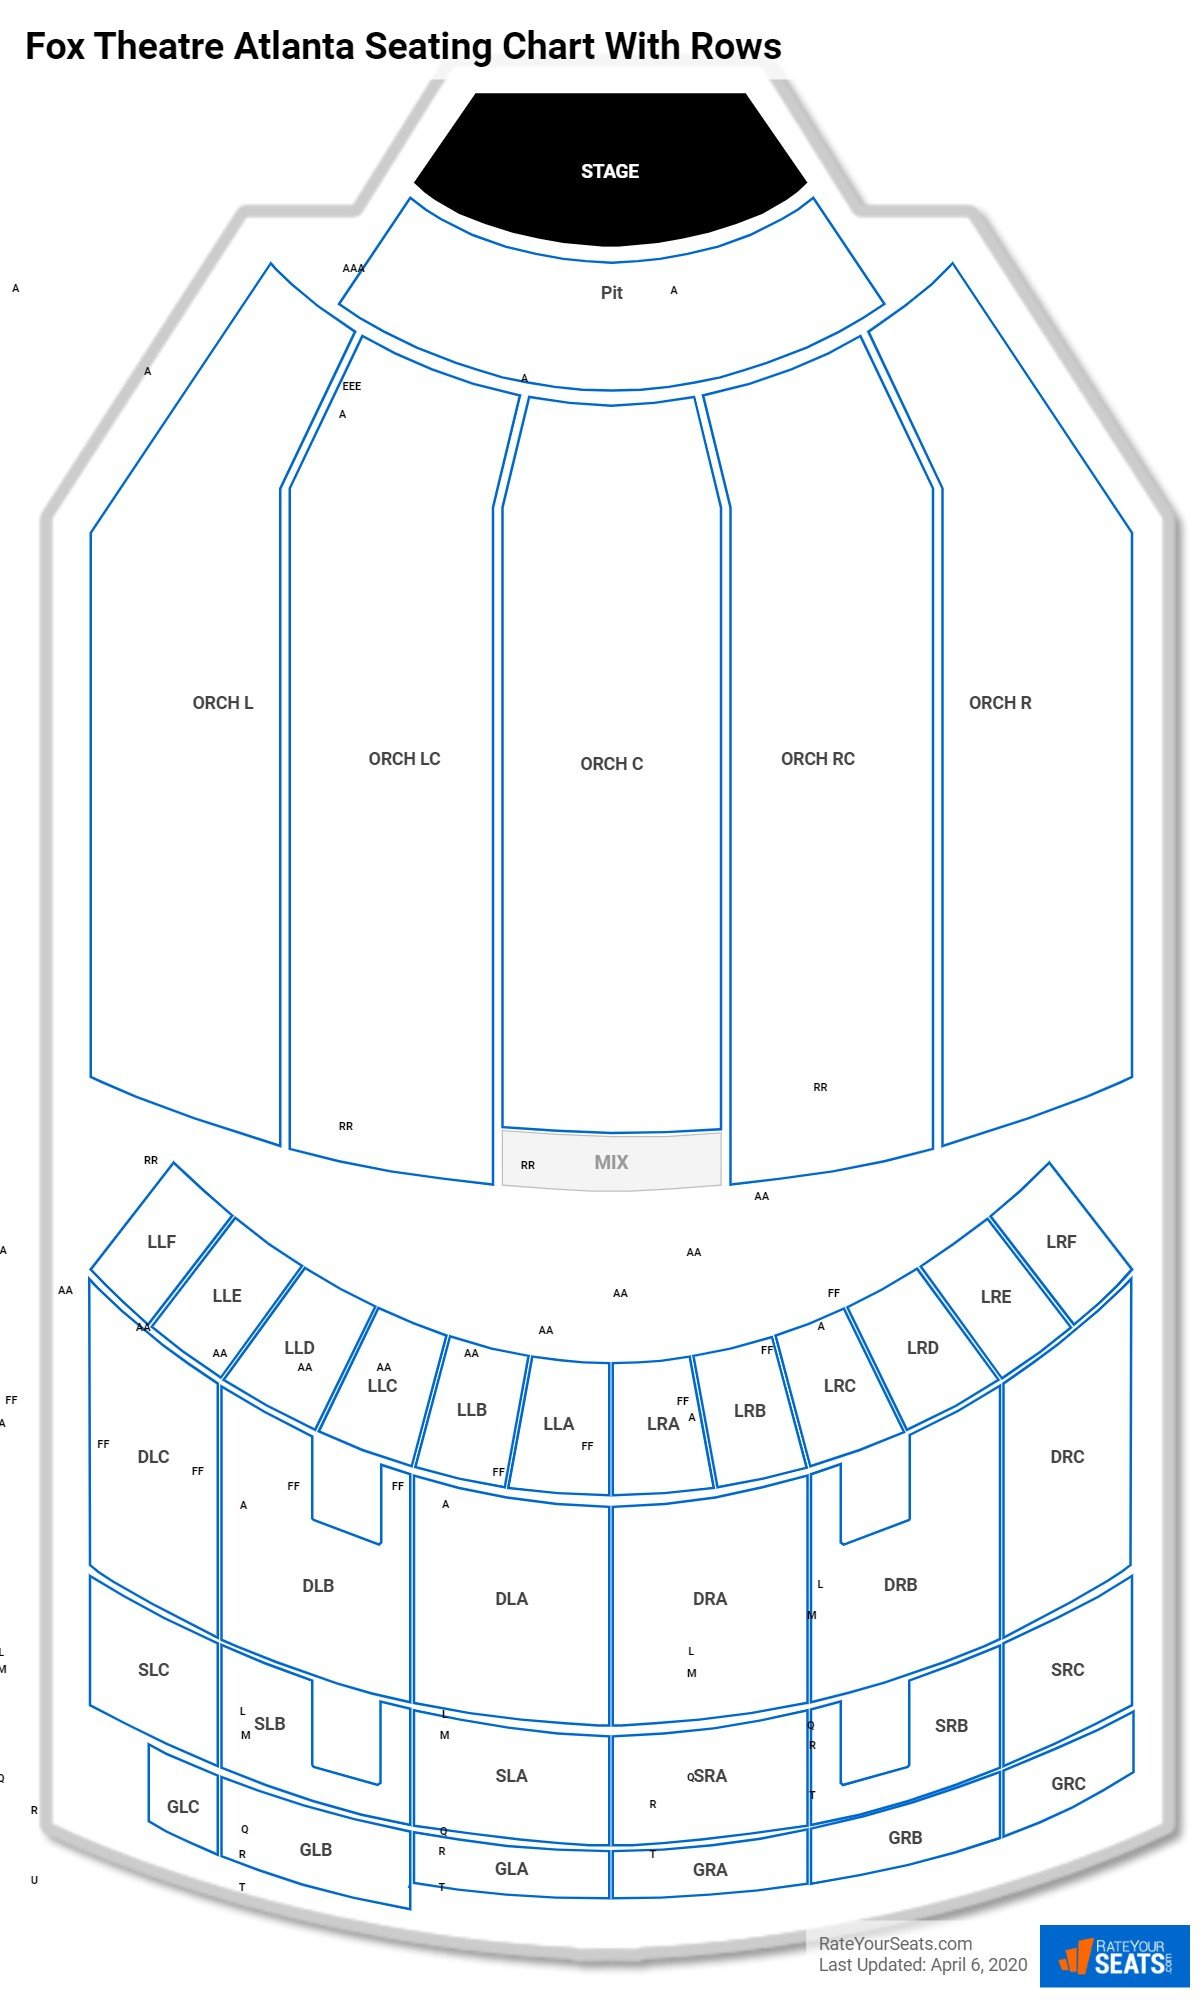 Fox Theatre Atlanta seating chart with rows